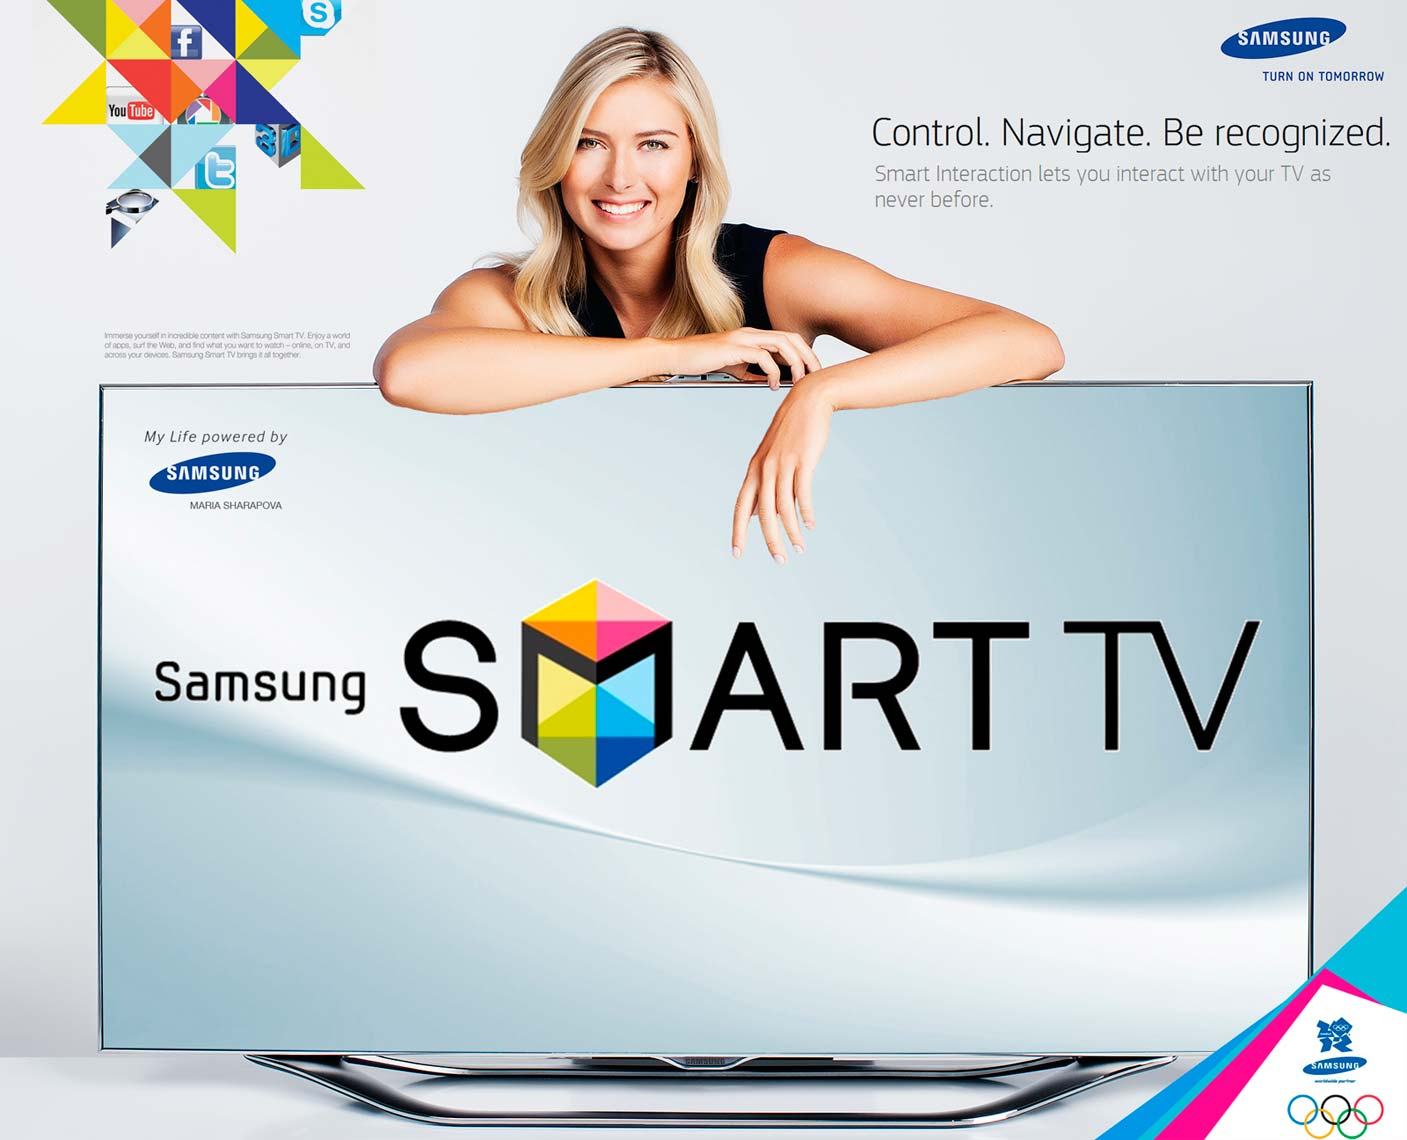 Chris-Hunt-Photography-Advertising-Maria-Sharapova-Samsung-433